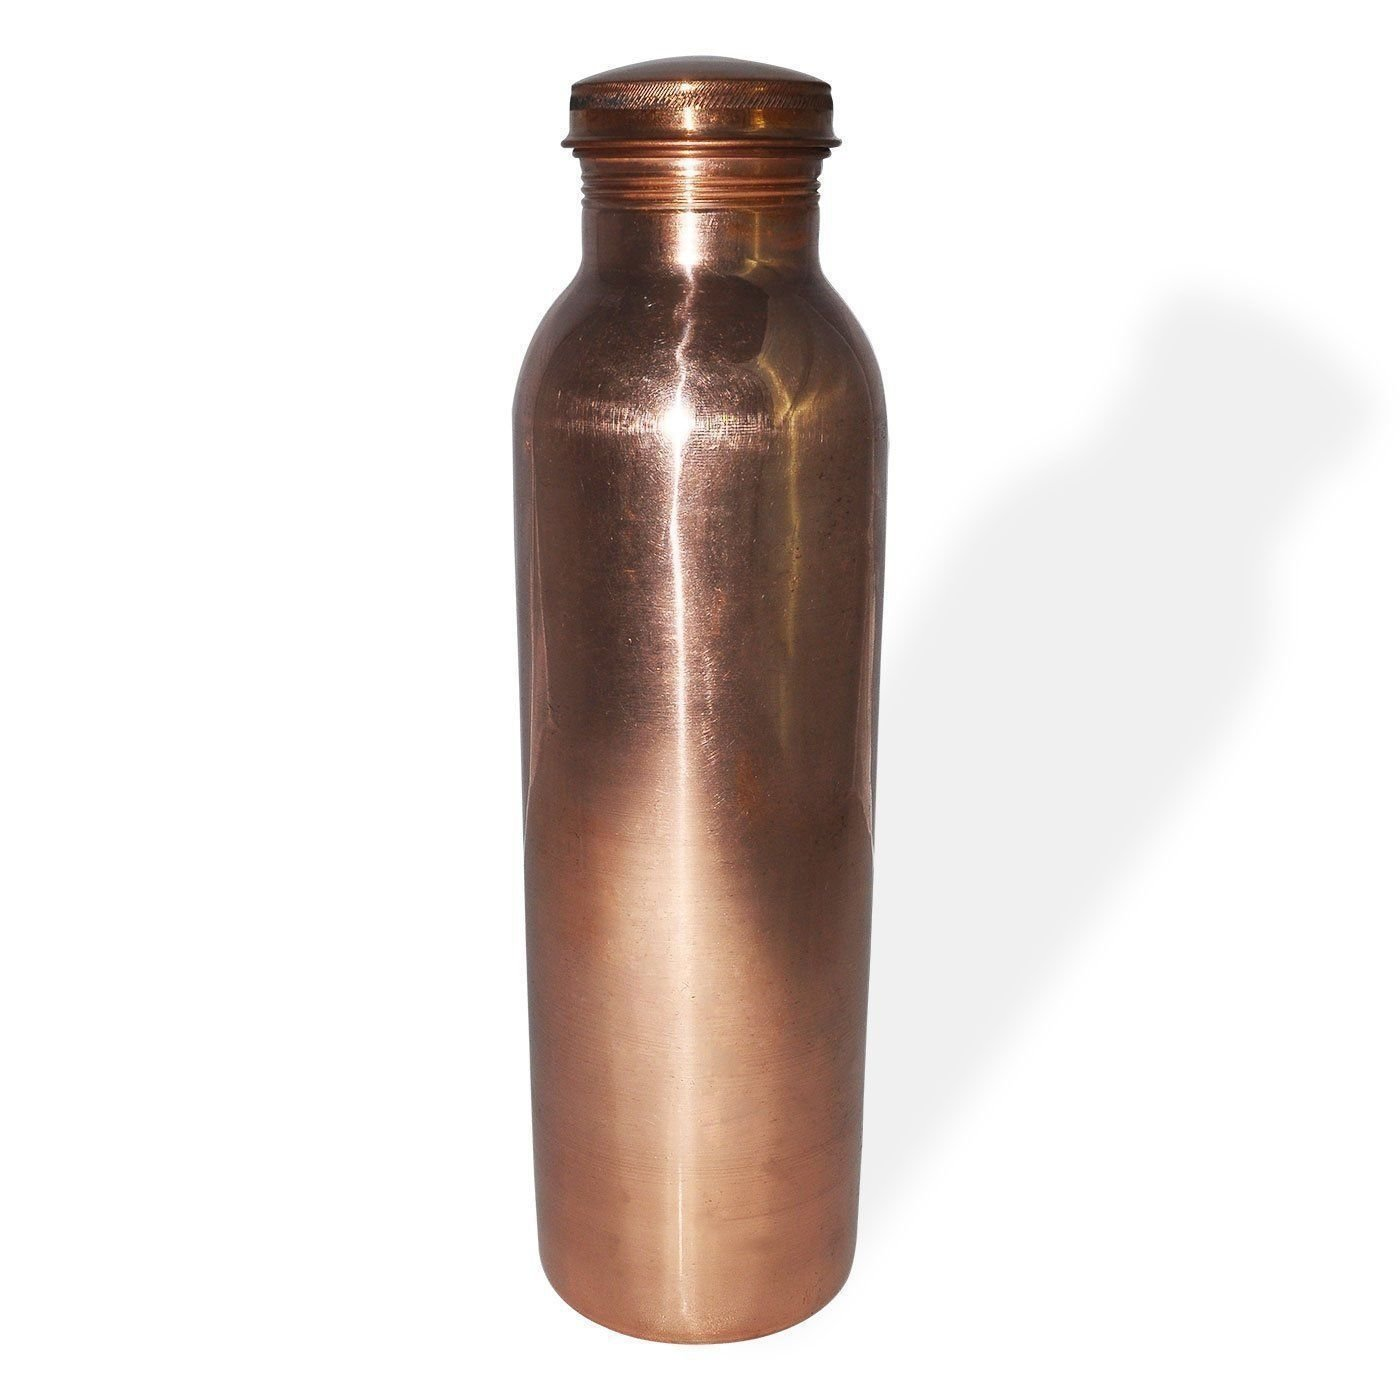 PARIJAT HANDICRAFT Pure Copper Water Bottle Spill Proof Copper Bottle Copper Vessel have Ayurveda Health Benefits Holds 30 Ounce Smooth Finished 8OB-XT6-I06